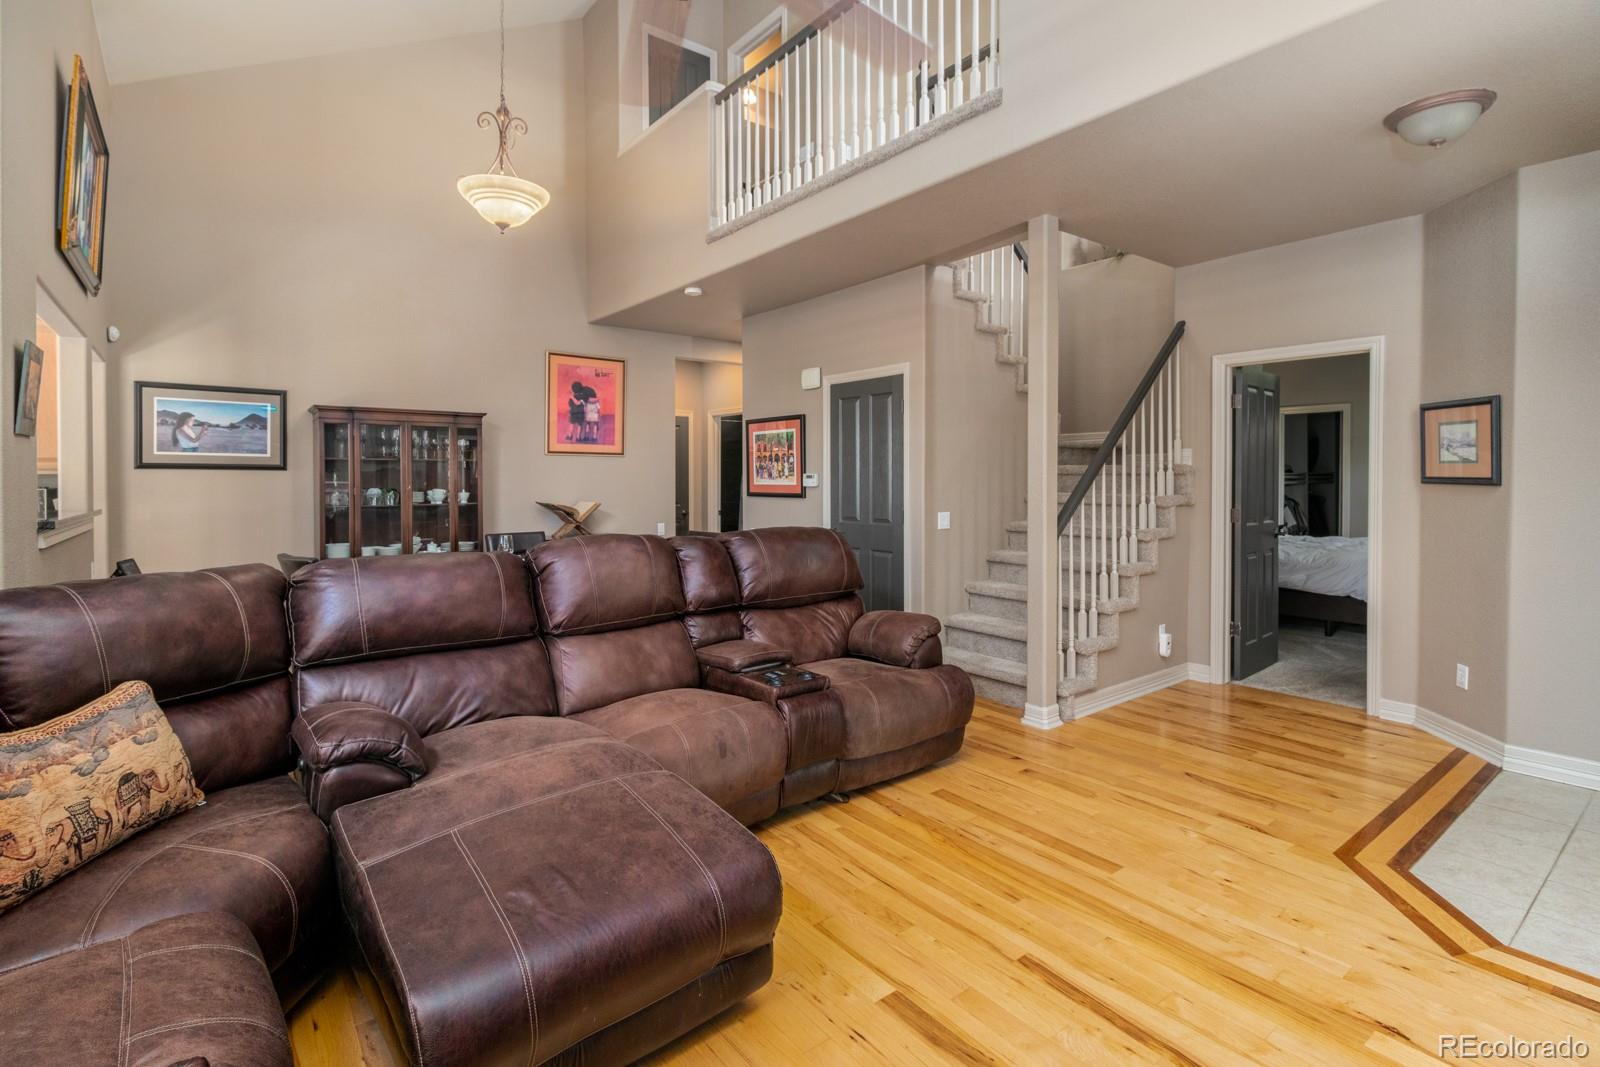 MLS# 7685605 - 8 - 8945 Tappy Toorie Circle, Highlands Ranch, CO 80129